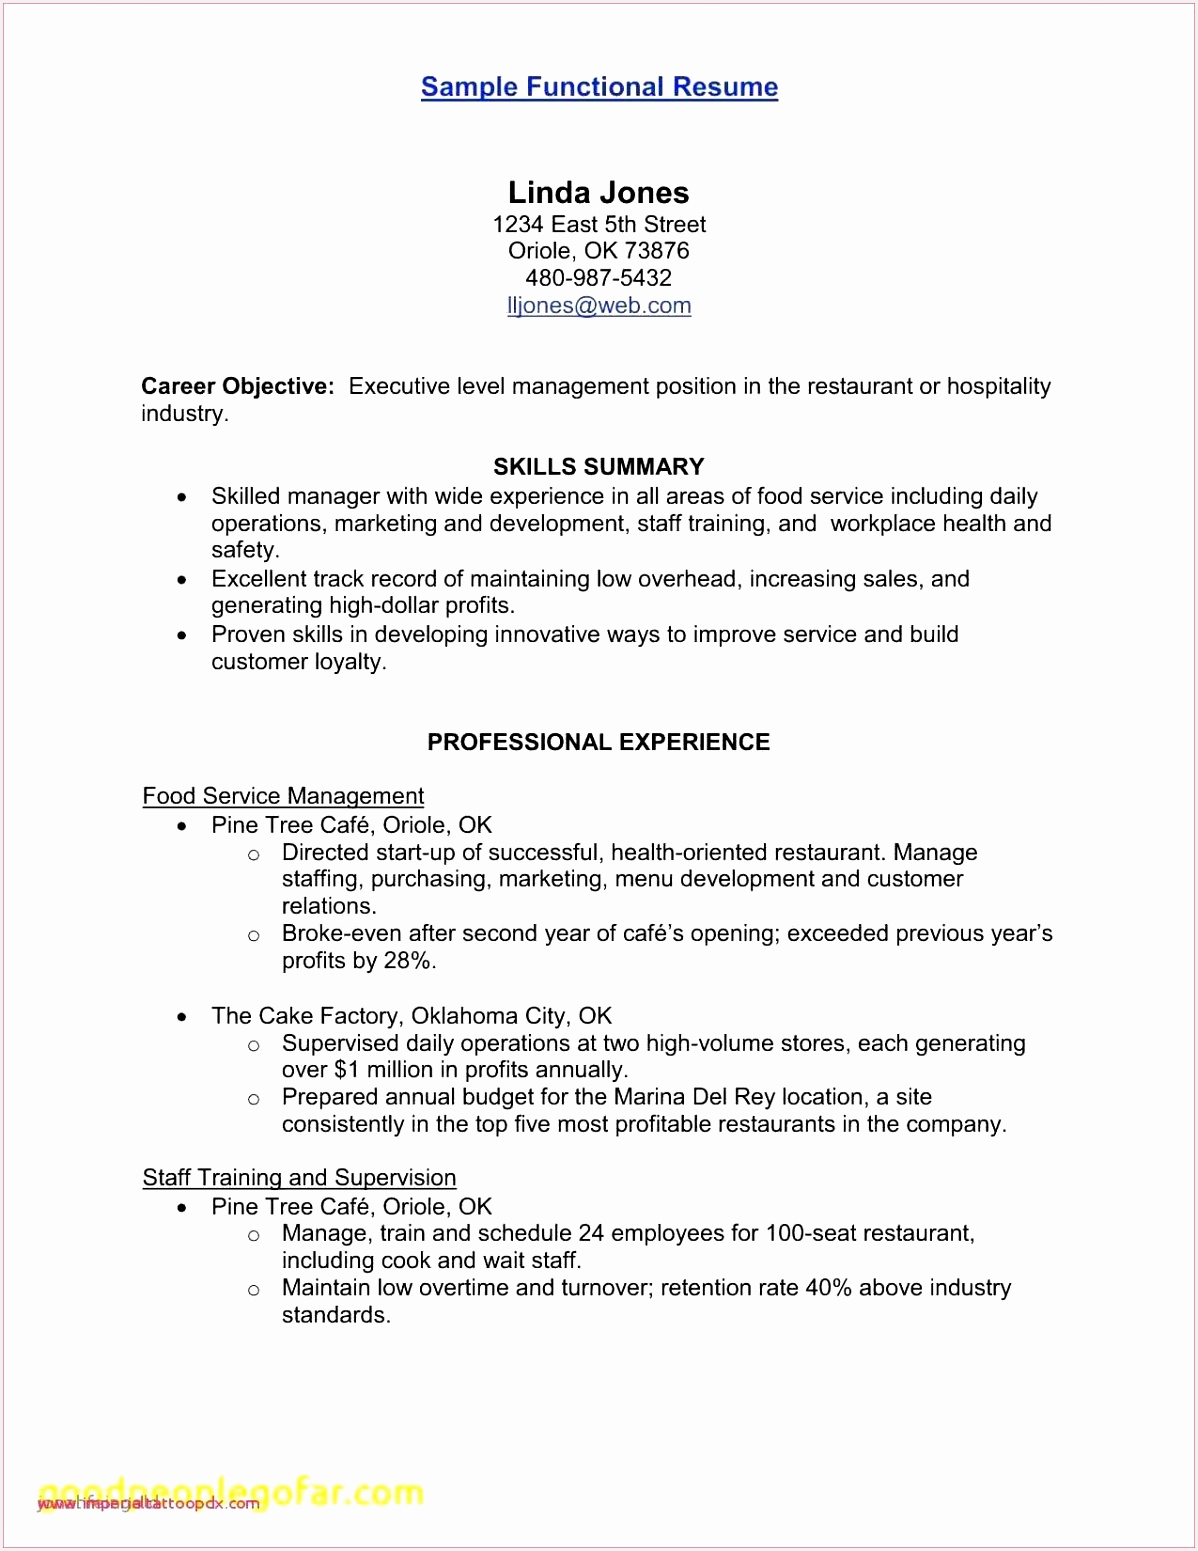 67 Beautiful s Sample Resume for Warehouse Manager In India 155111981maIf